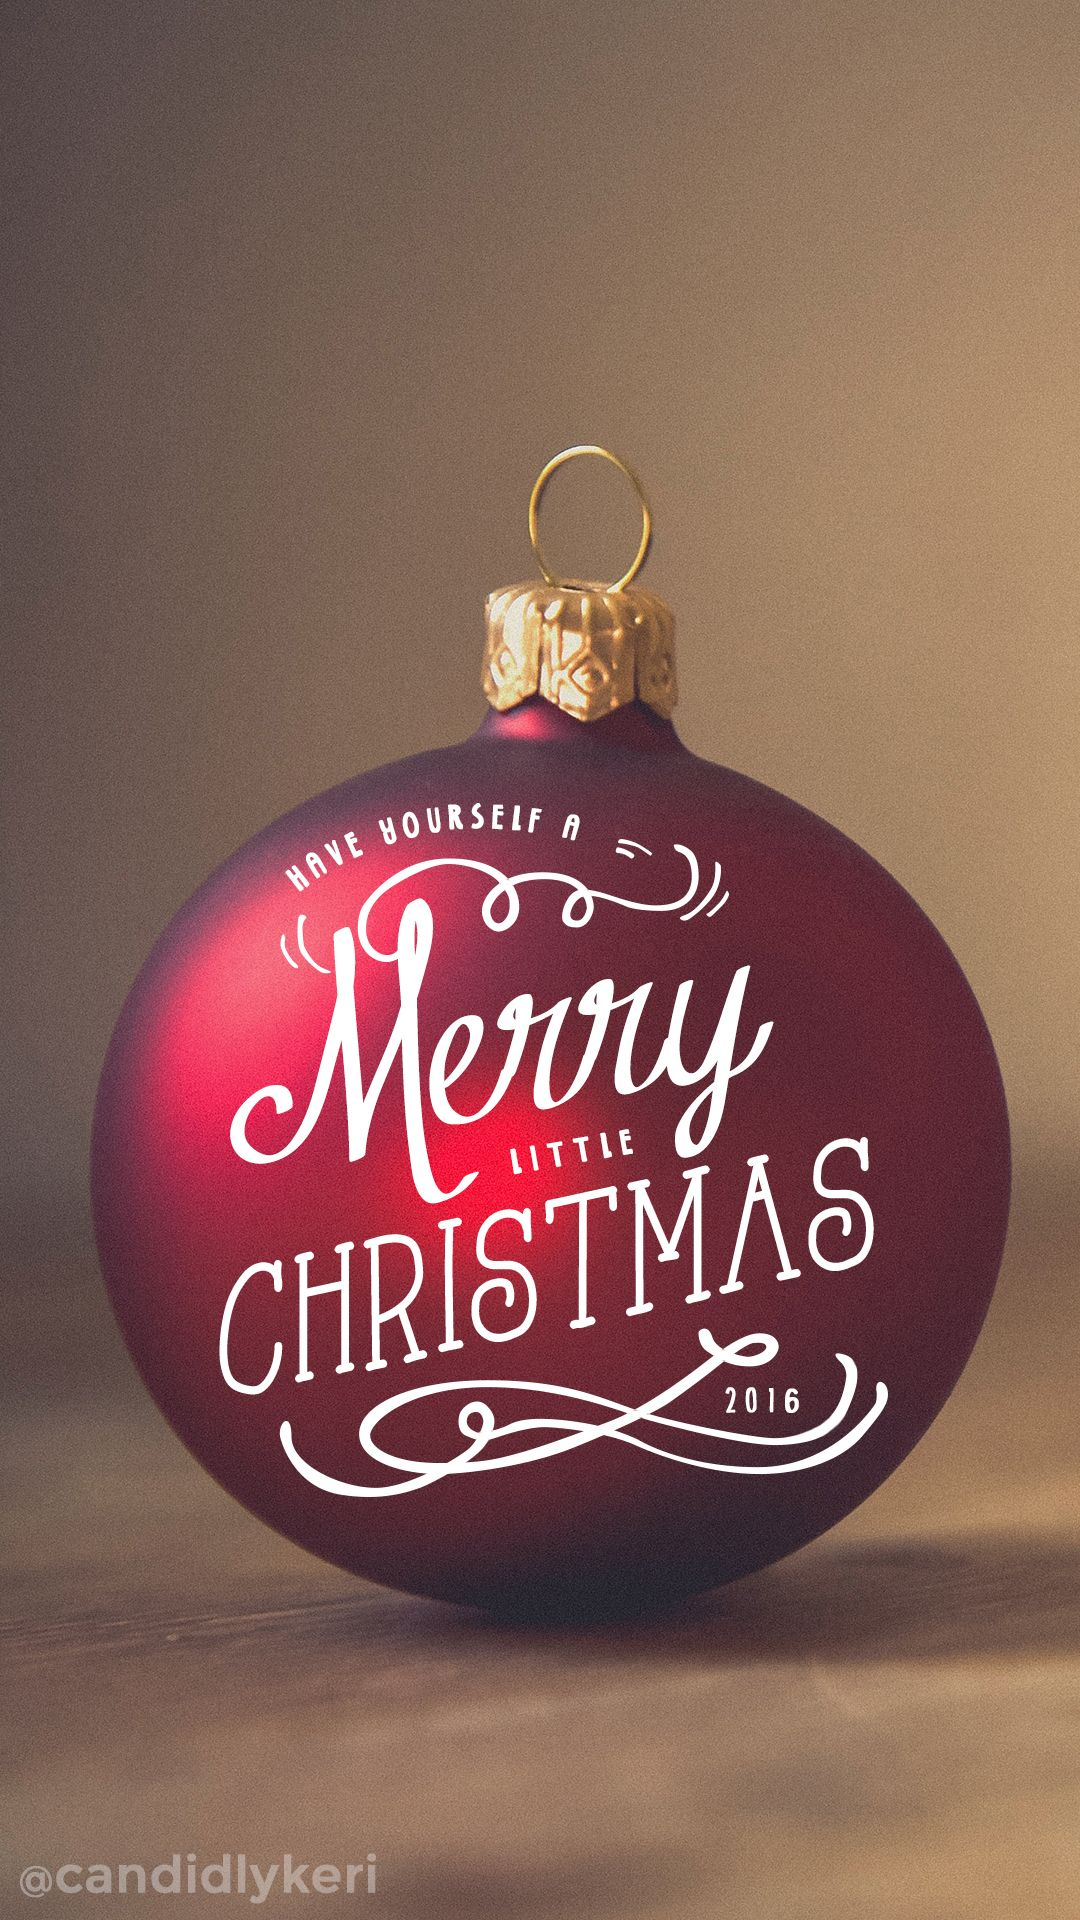 Have Yourself A Merry Little Christmas Red Ornament Background Wallpaper Wallpaper Iphone Christmas Christmas Wallpaper Free Free Christmas Wallpaper Downloads